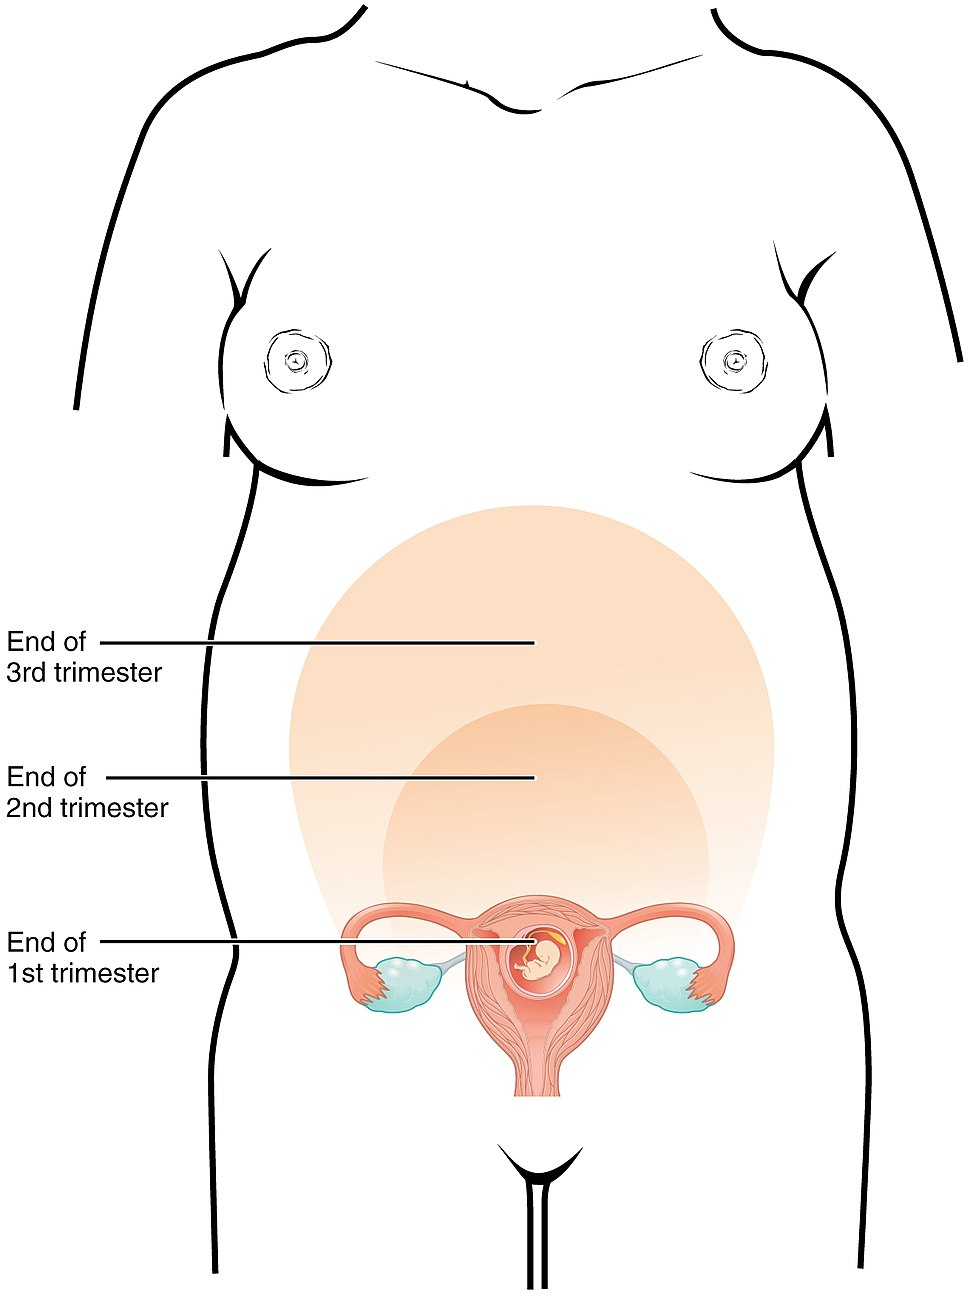 2917 Size of Uterus Throughout Pregnancy-02